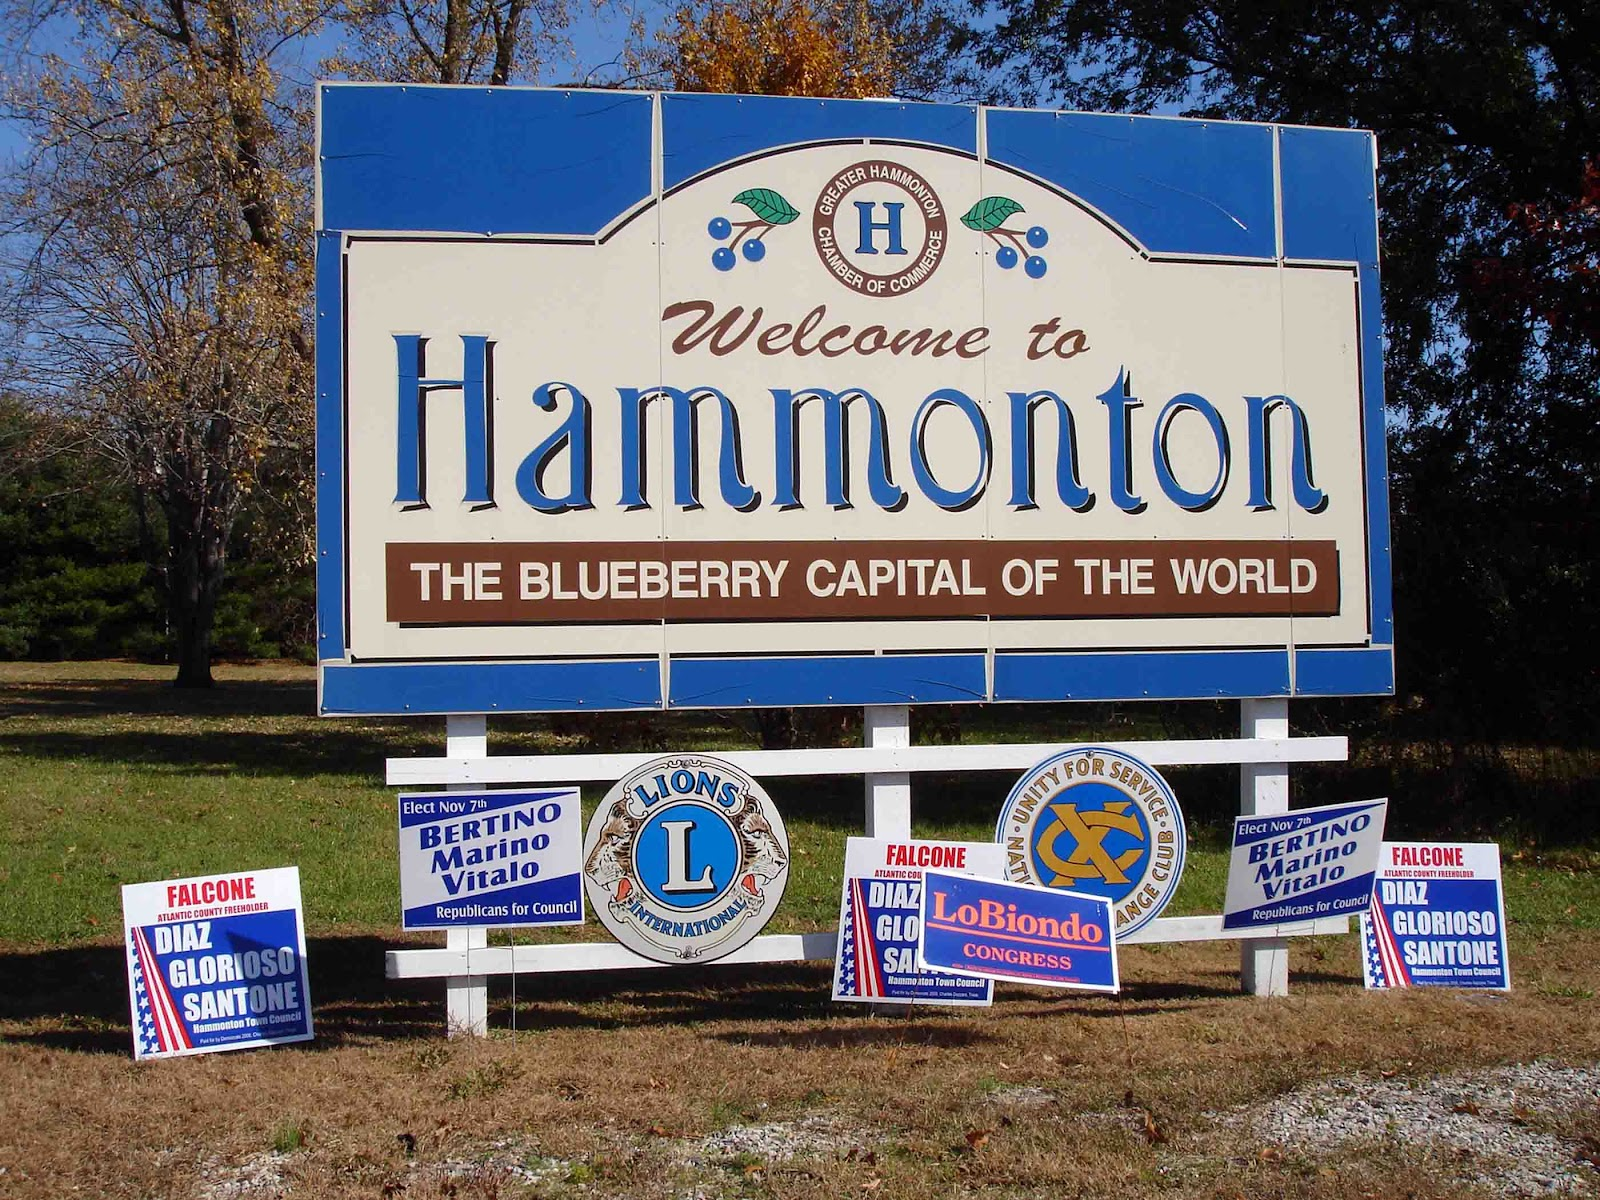 Hammonton (NJ) United States  city images : Capital of the World: Welcome to Hammonton, New Jersey, 2006.